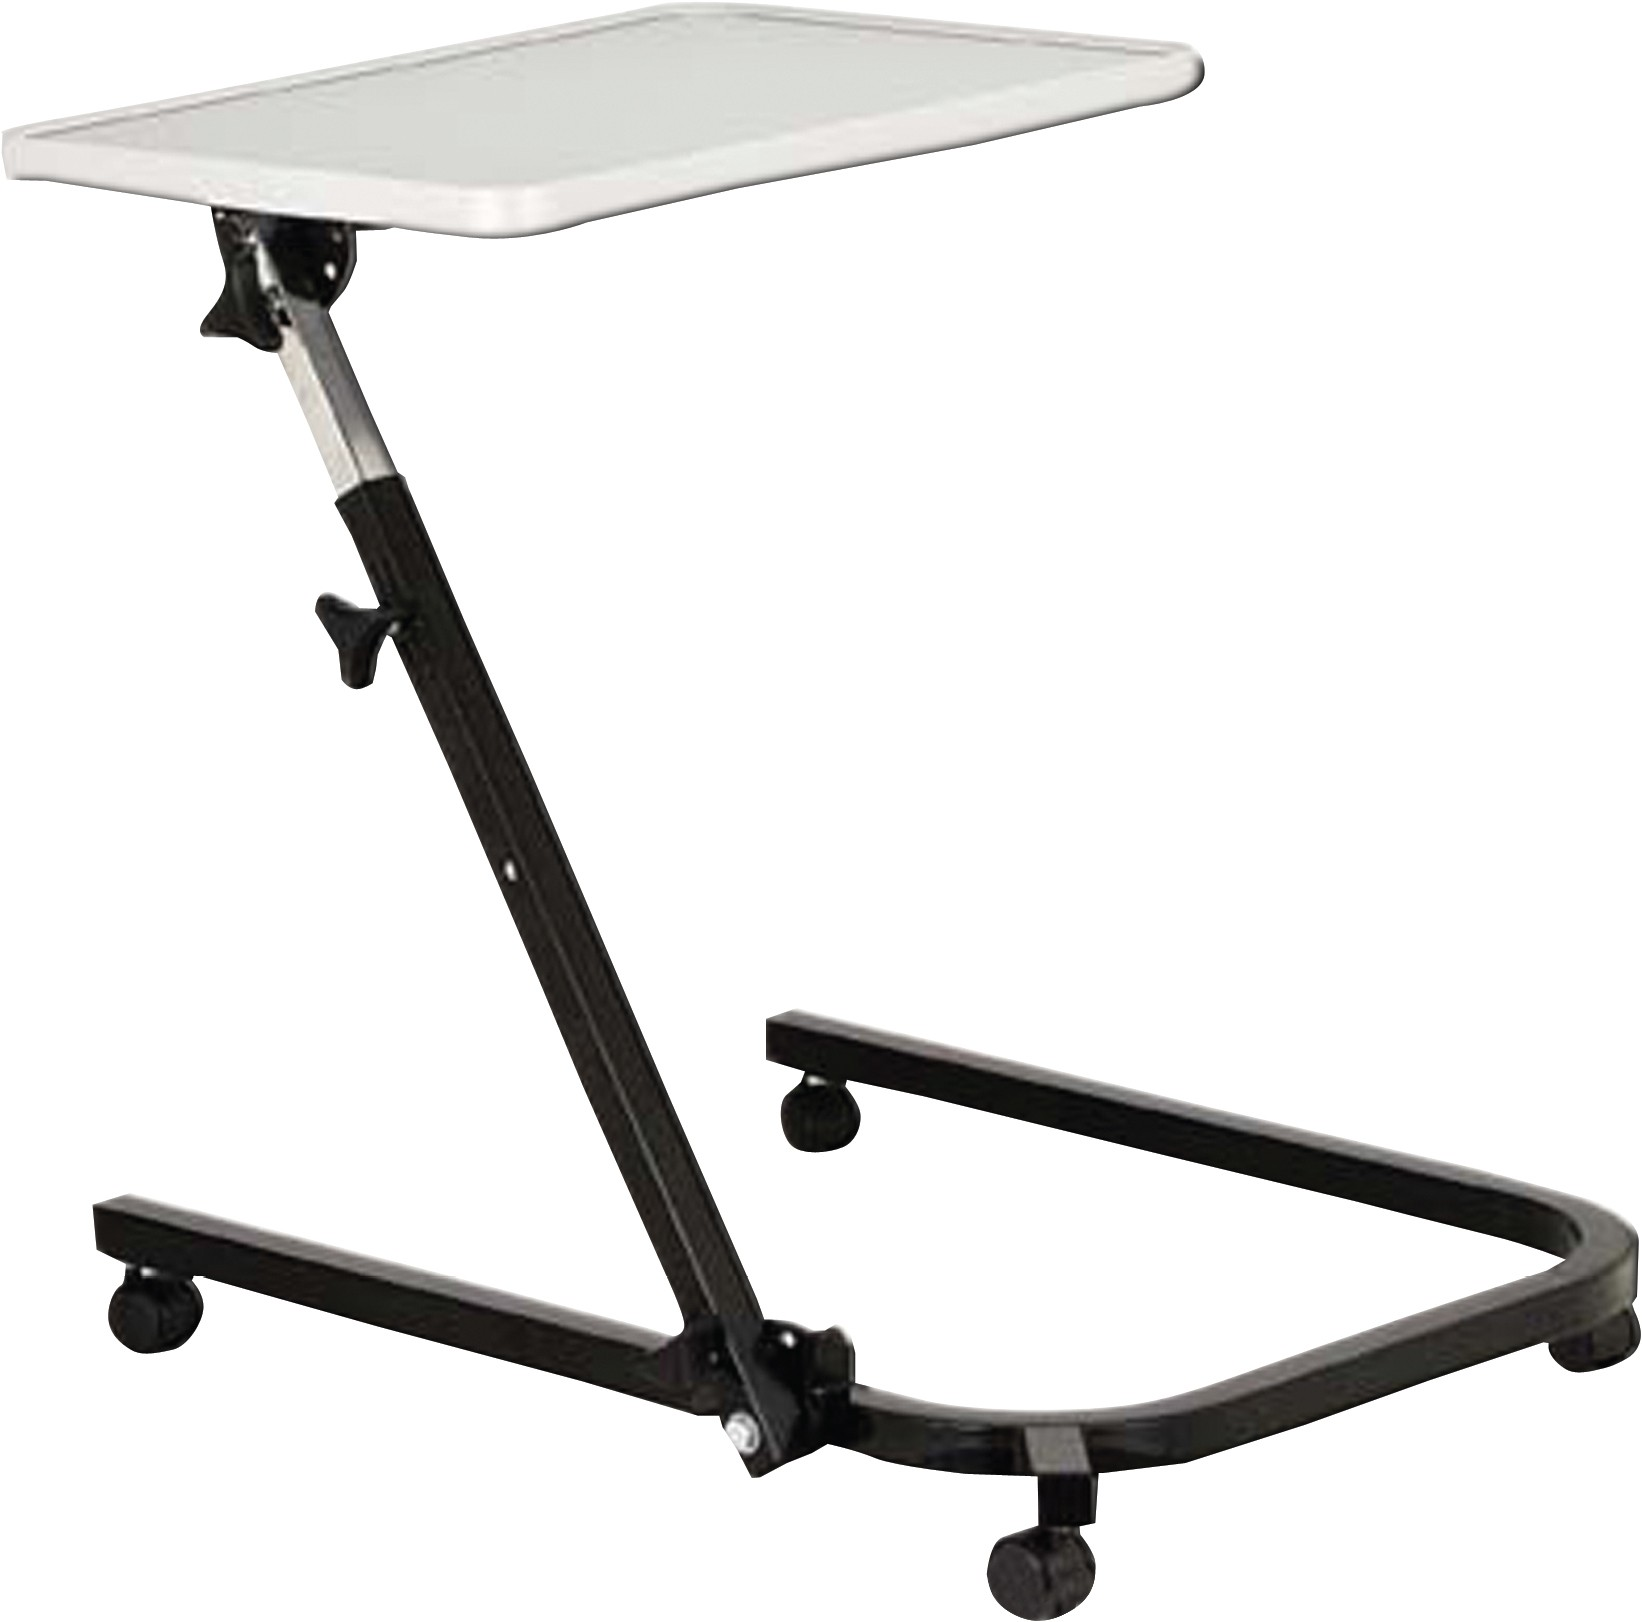 Split top overbed table - Pivot And Tilt Hospital Overbed Table